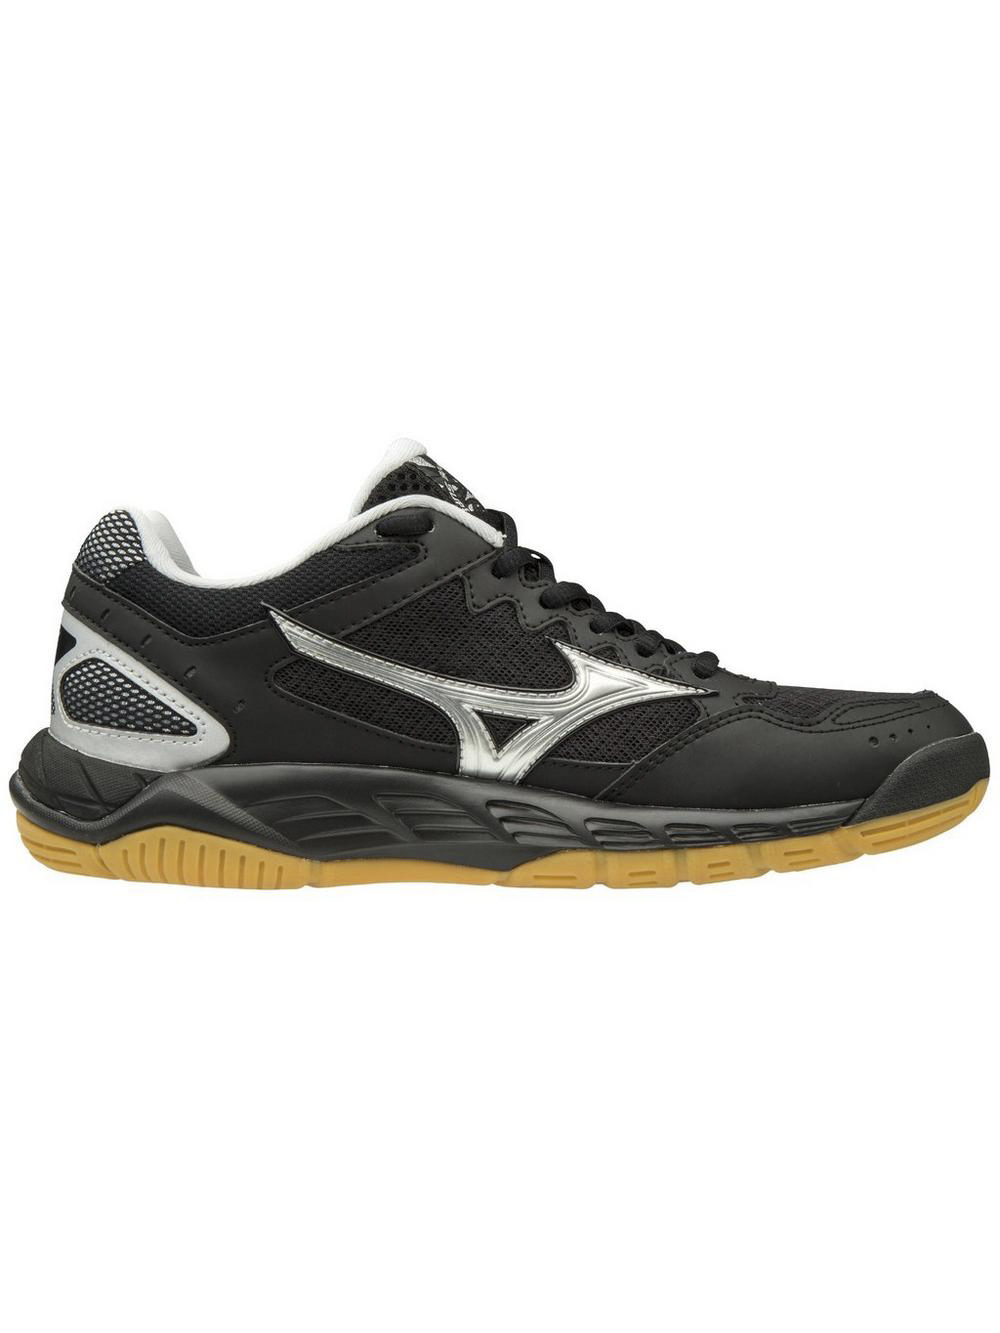 Mizuno Wave Supersonic Shoe Black Silver Midwest